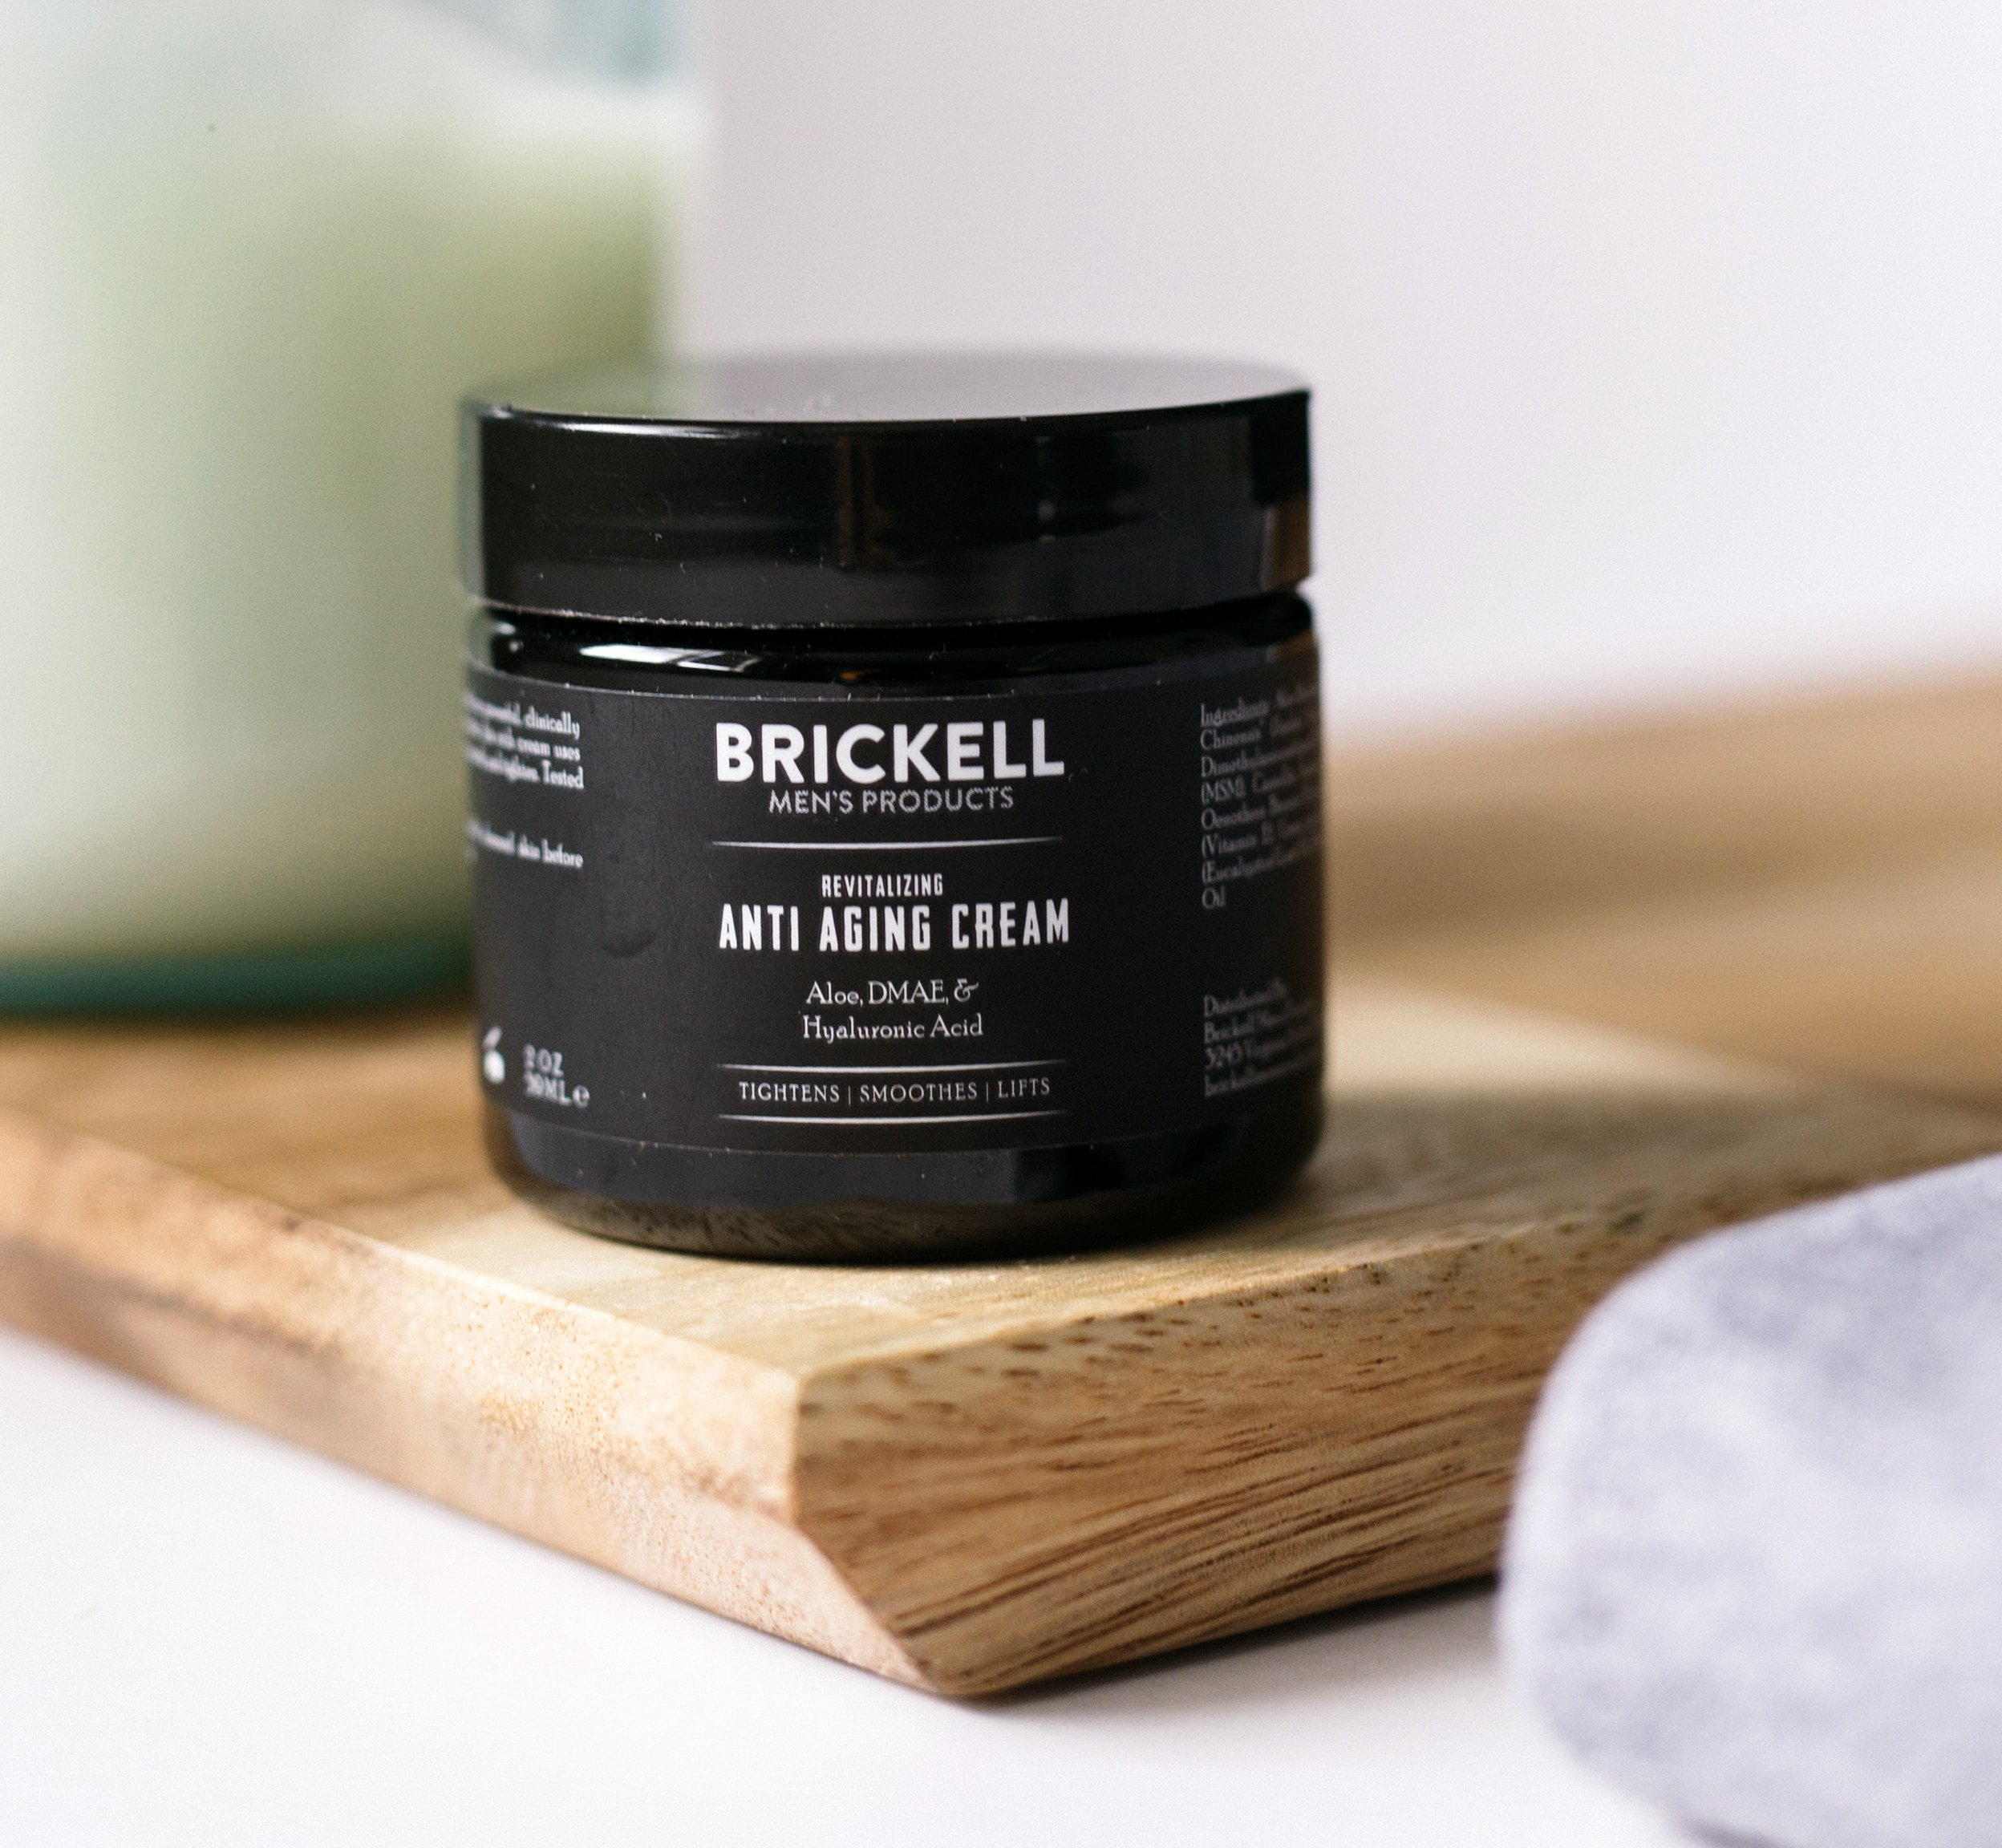 Brickell Men's Revitalizing Anti-Aging Cream For Men, Natural and Organic Anti Wrinkle Night Face Cream To Reduce Fine Lines and Wrinkles, 2 Ounce, Scented by Brickell Men's Products (Image #5)